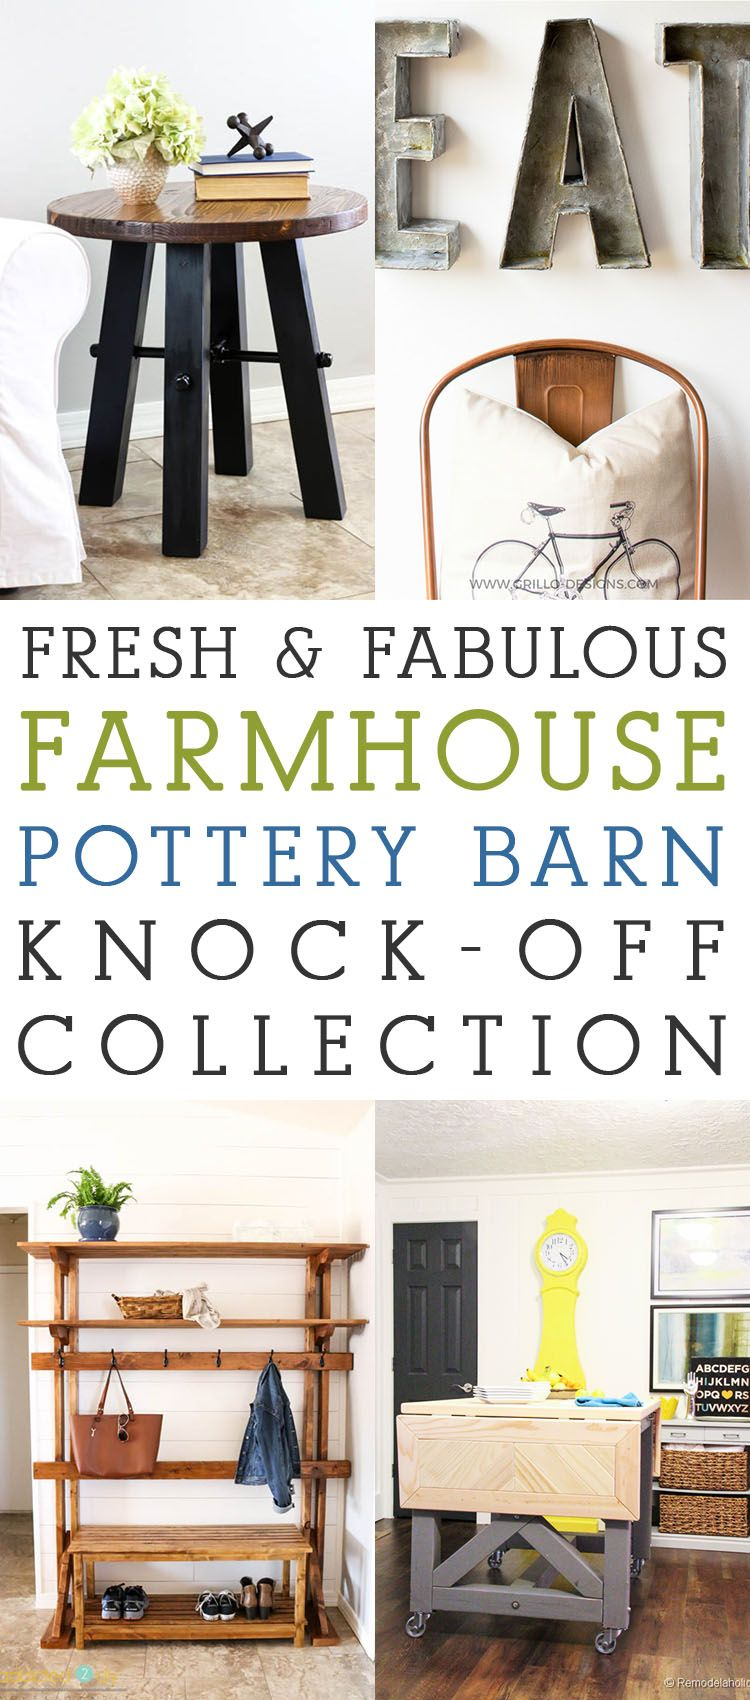 Fresh and Fabulous Farmhouse Pottery Barn KnockOff